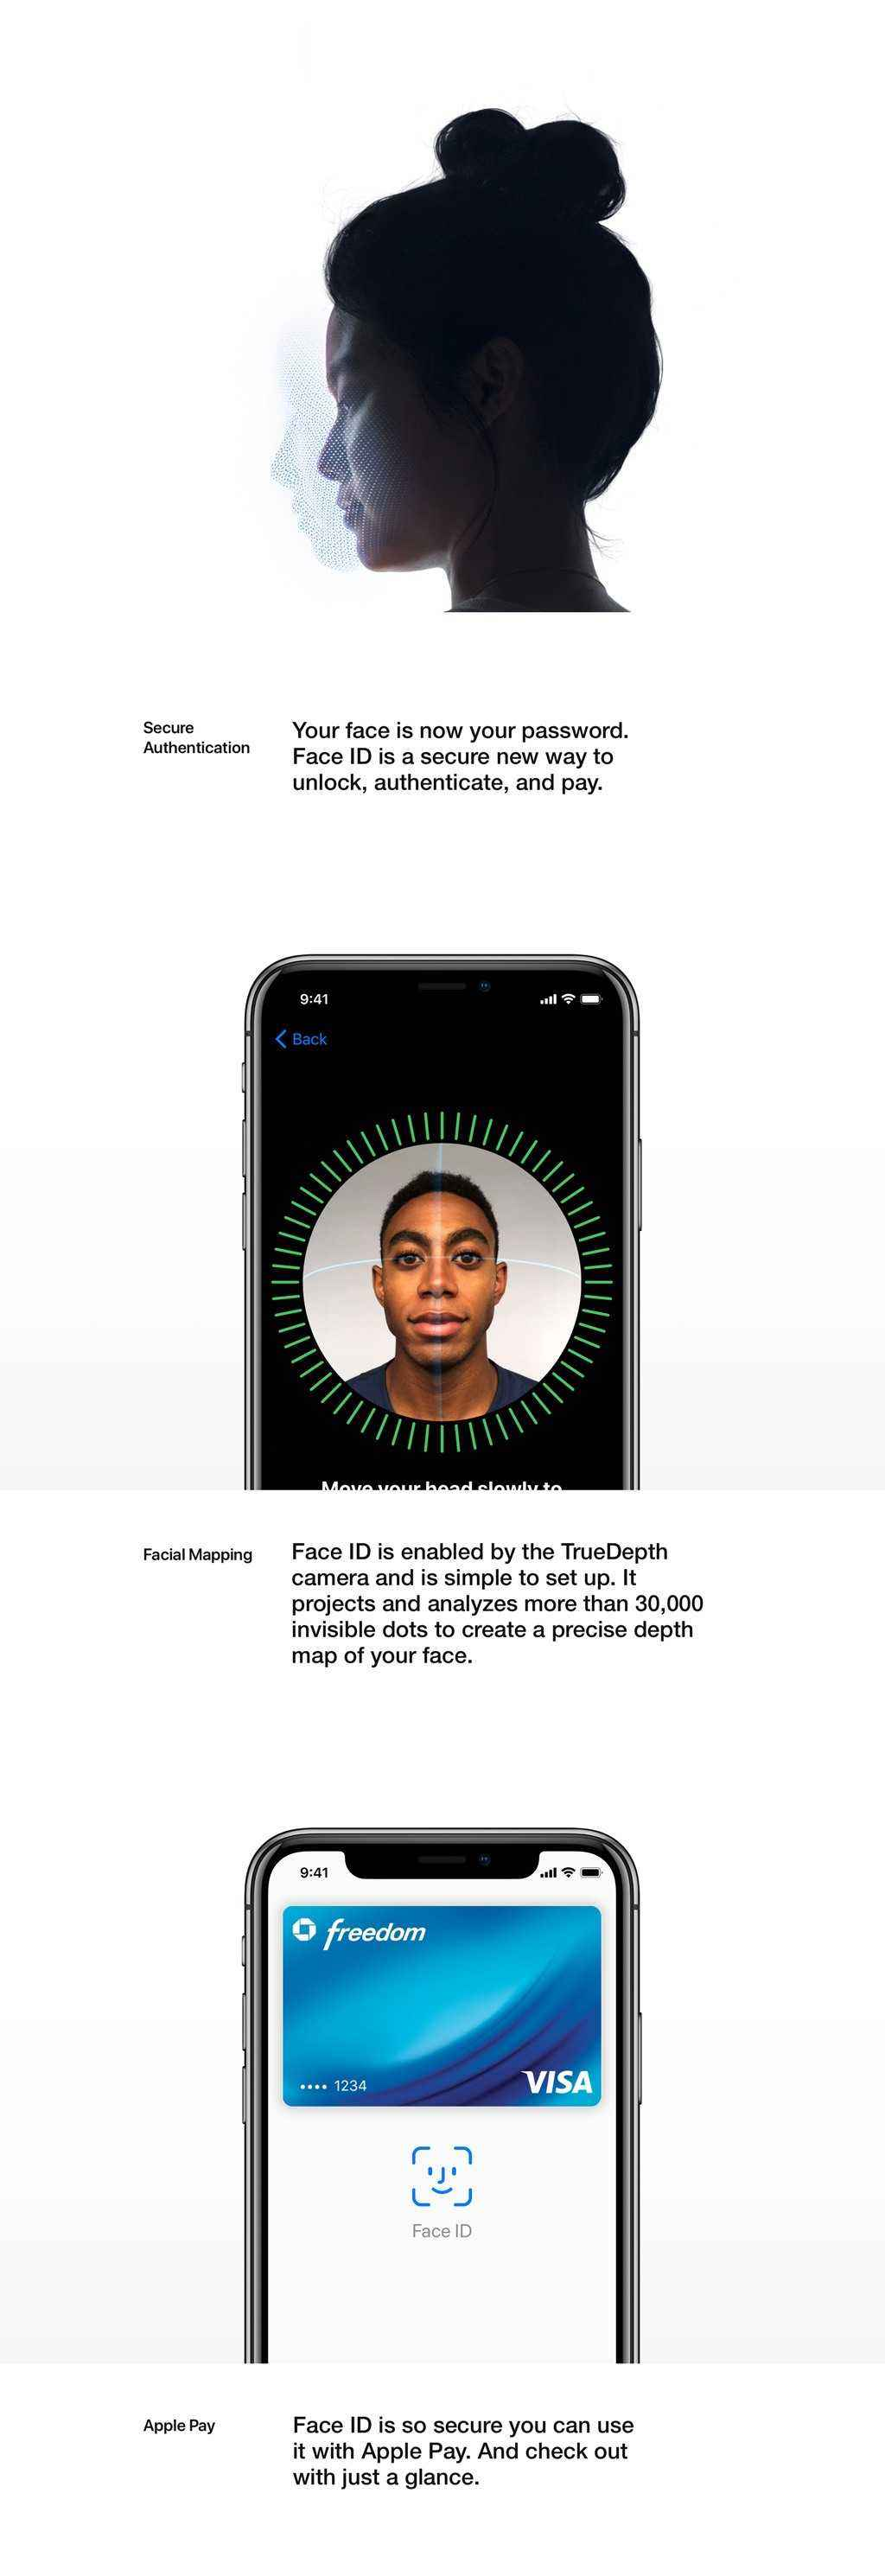 Your face is now your password. Face ID is secure new way to unlock, authenticate, and pay.